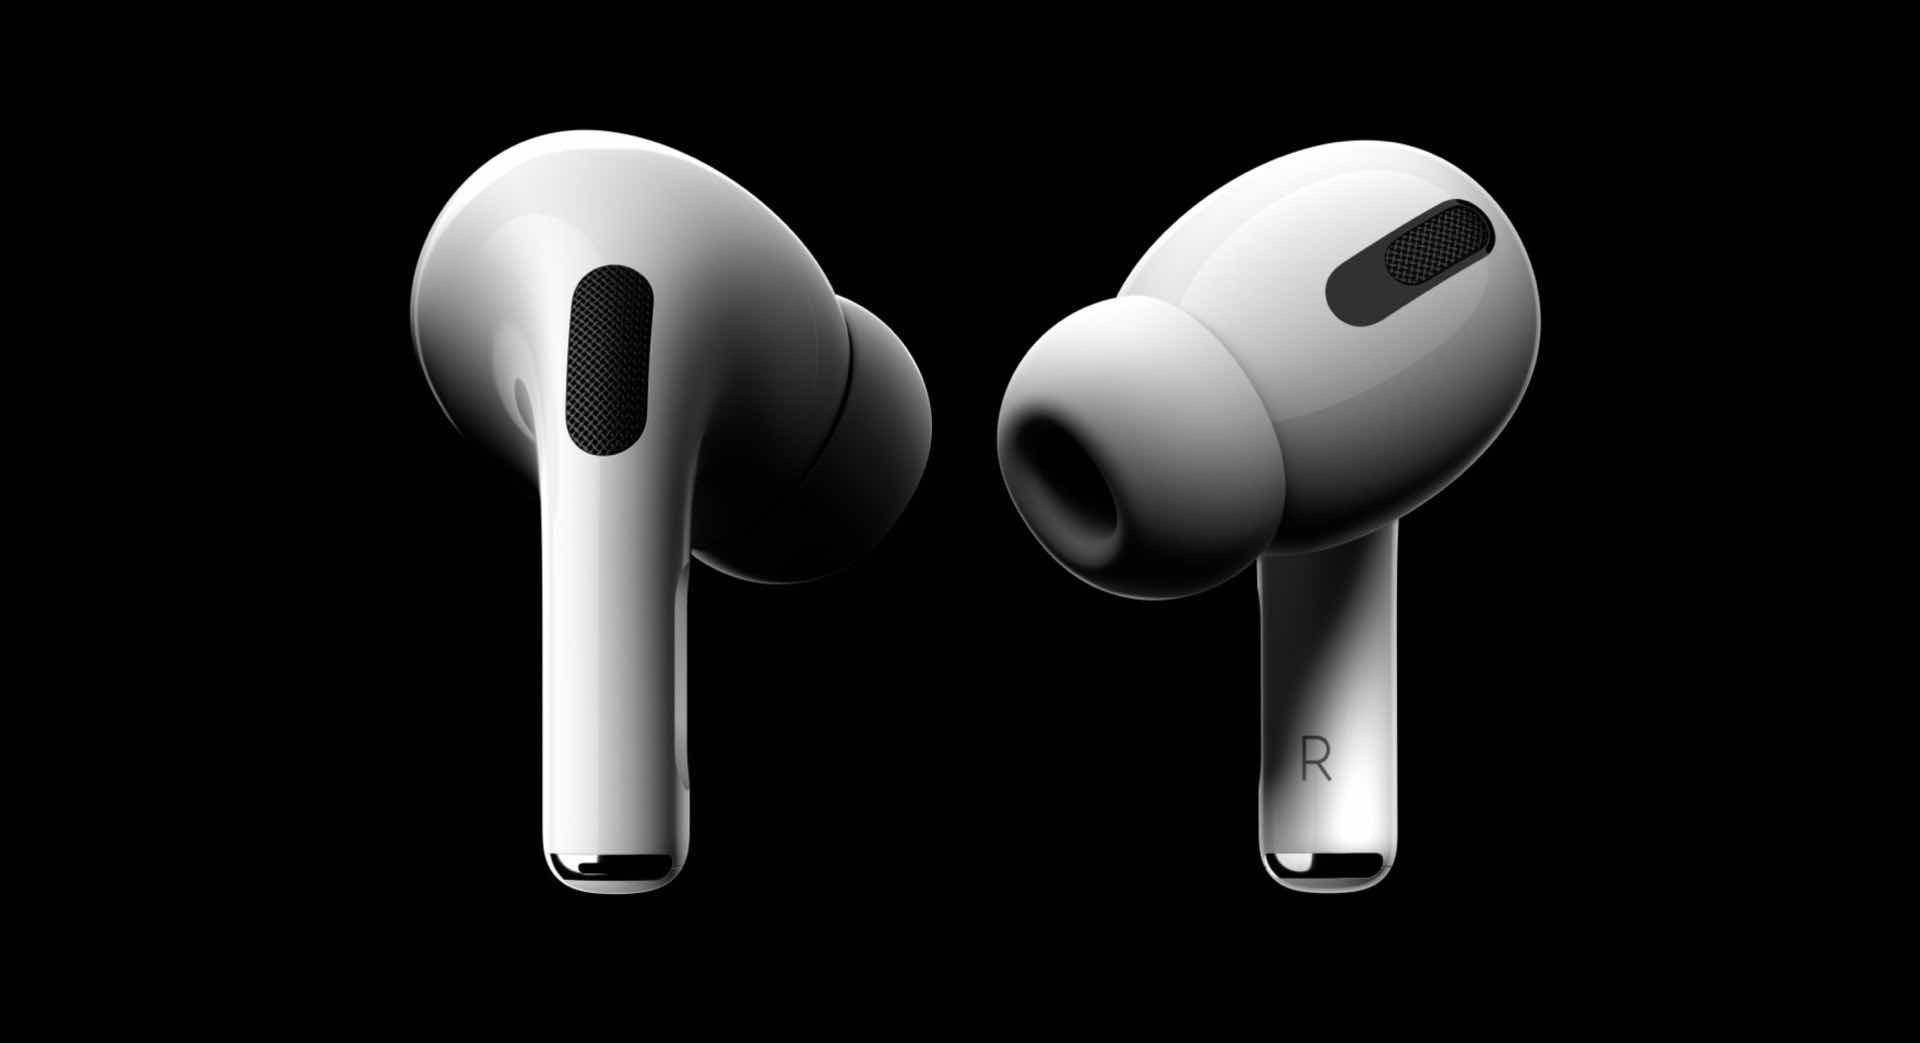 Apple's new AirPods Pro earbuds. ($249)